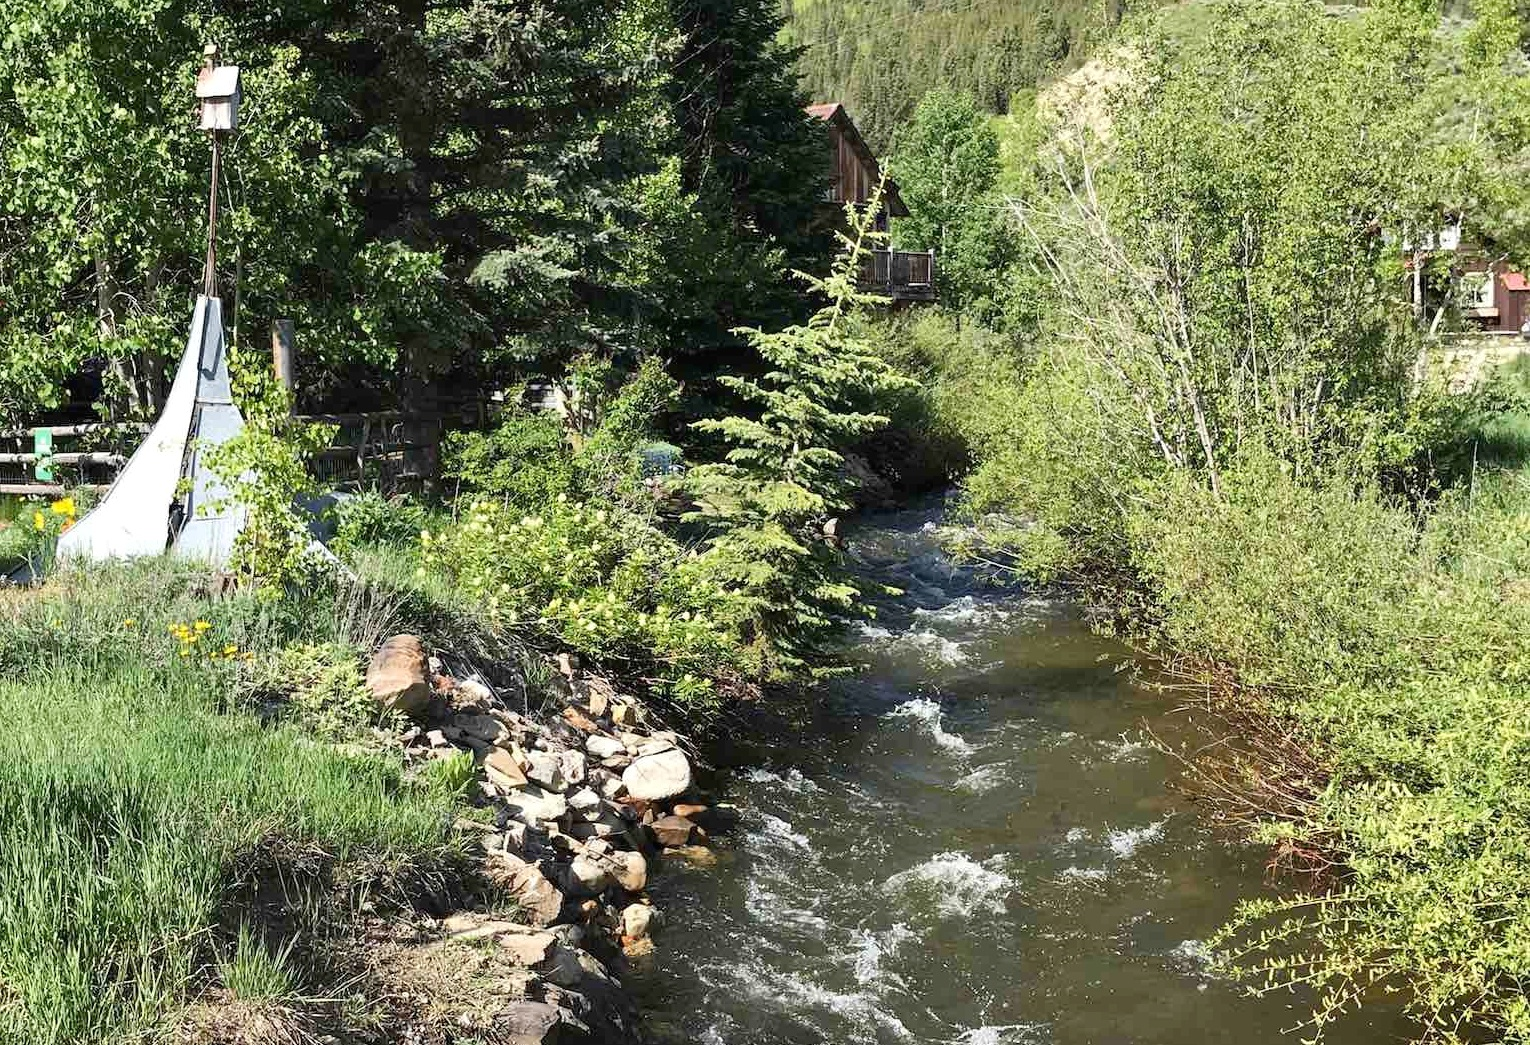 Coal Creek at the edge of town in Crested Butte.